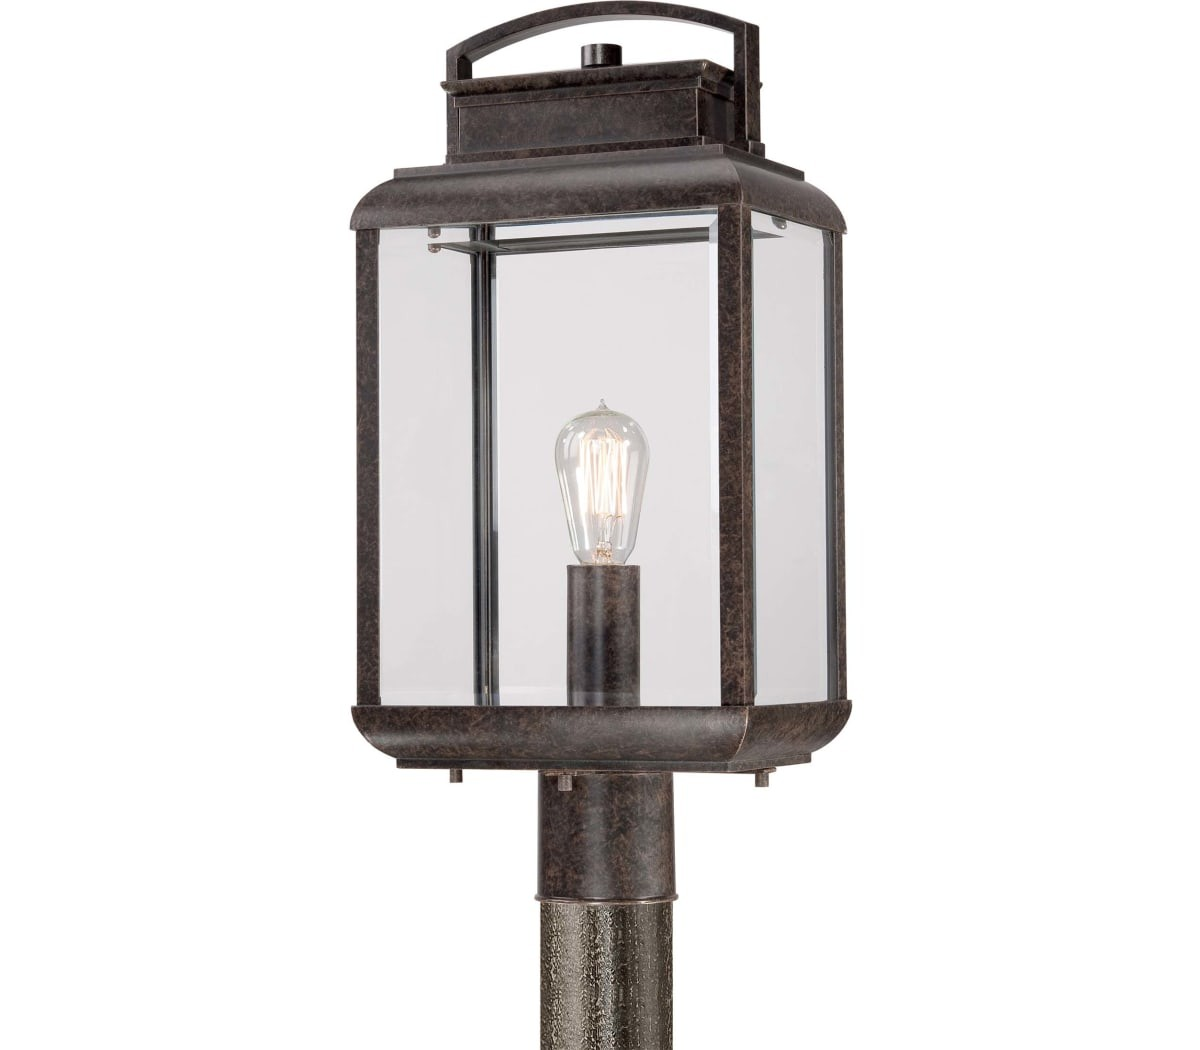 quoizel lighting byron brn9010ib